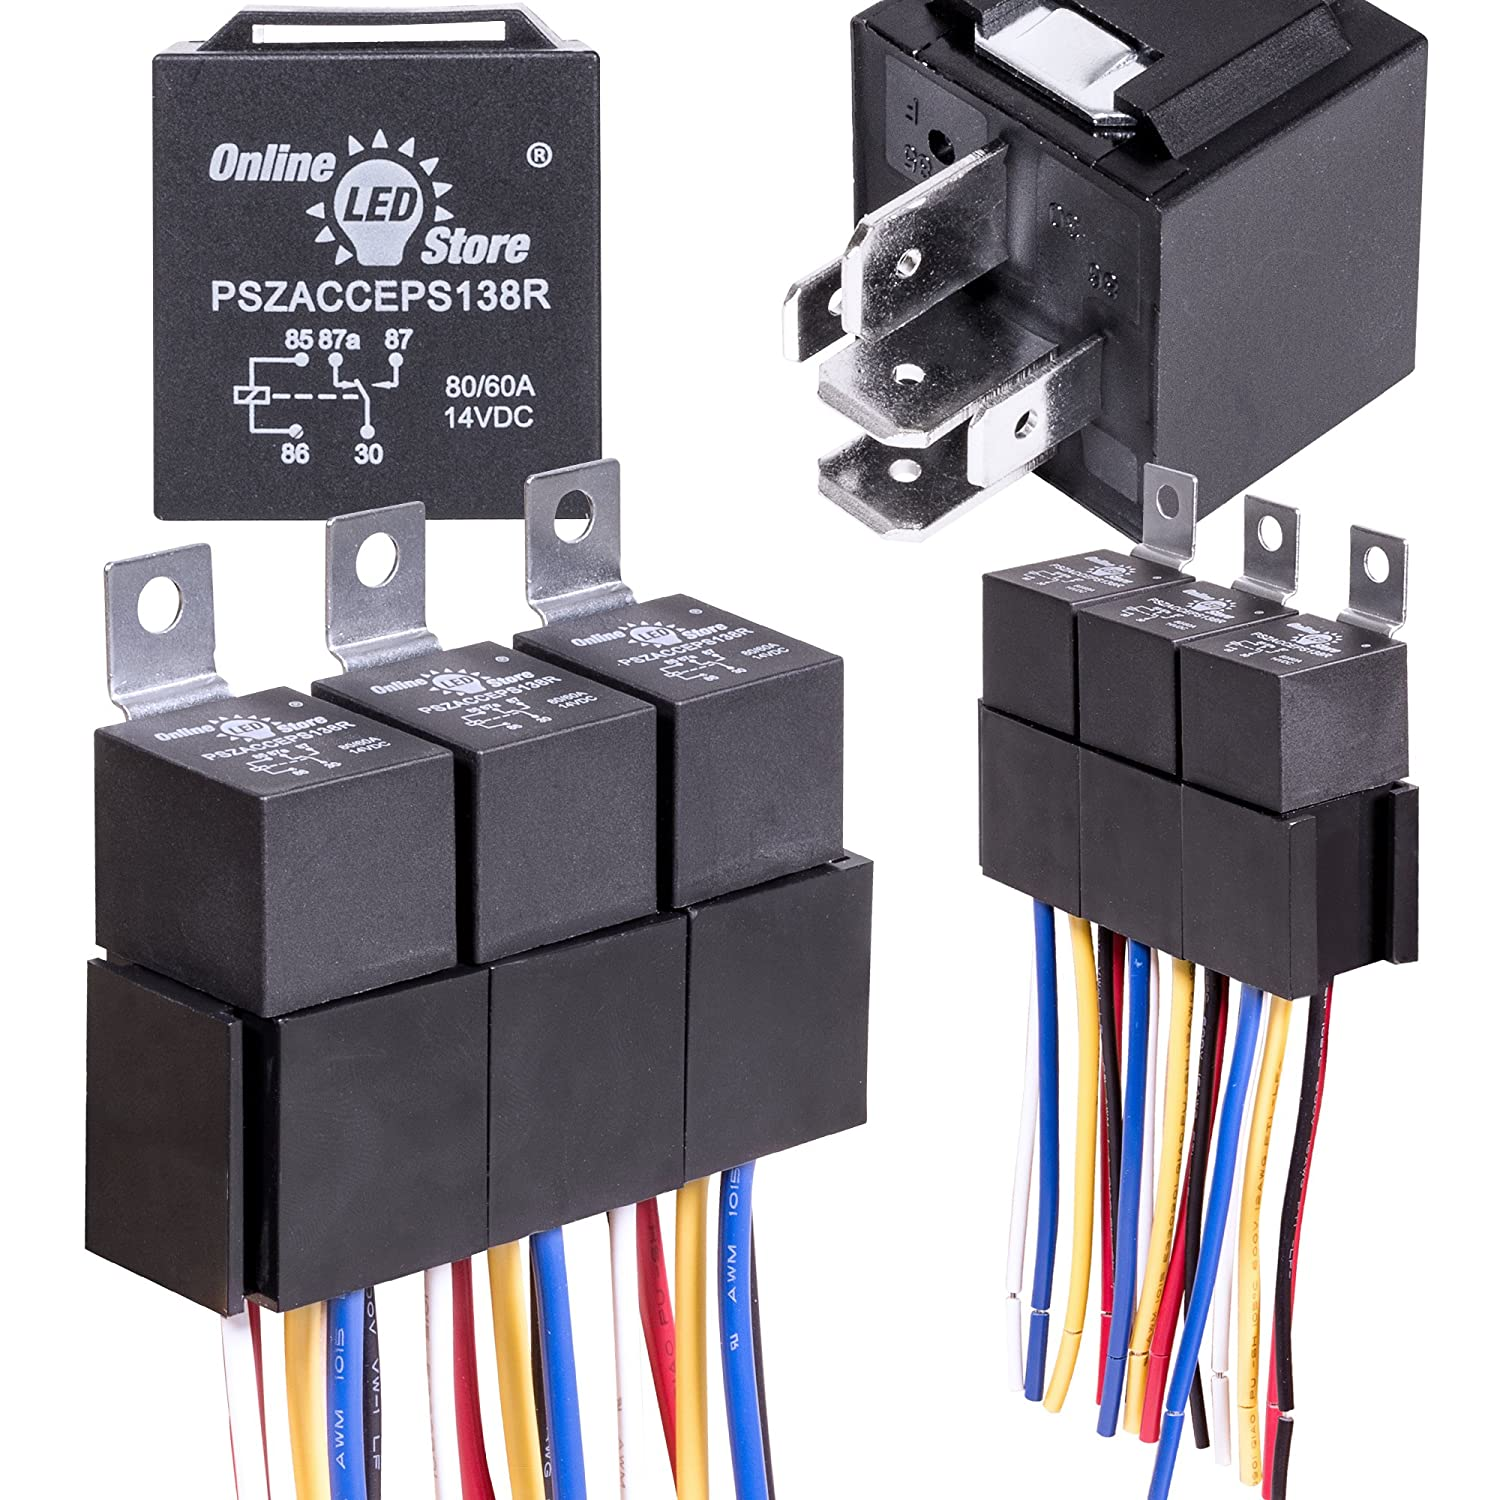 Power Pole Relay Switch Online Led Store 5 Pack 12v 60 80 Amp Harness Set Heavy Duty Pin Spdt Automotive Relays 12 Awg Hot Wires